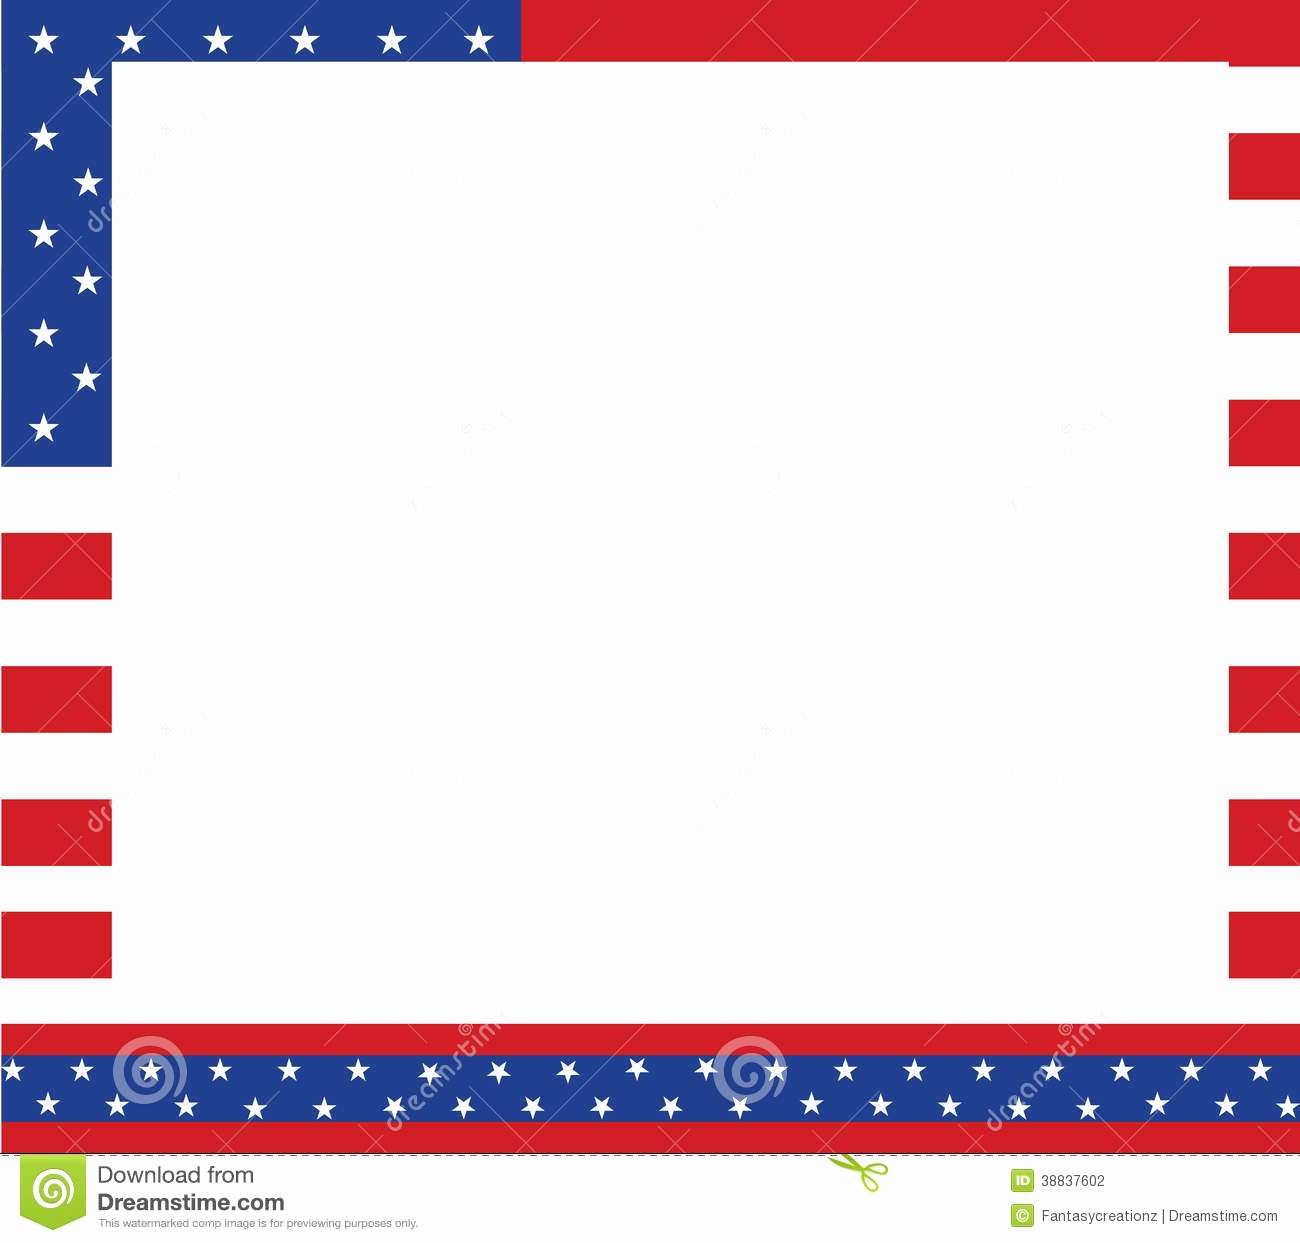 Patriotic Borders for Word Documents Inspirational Patriotic Border Stock Vector Illustration Of Backgrounds